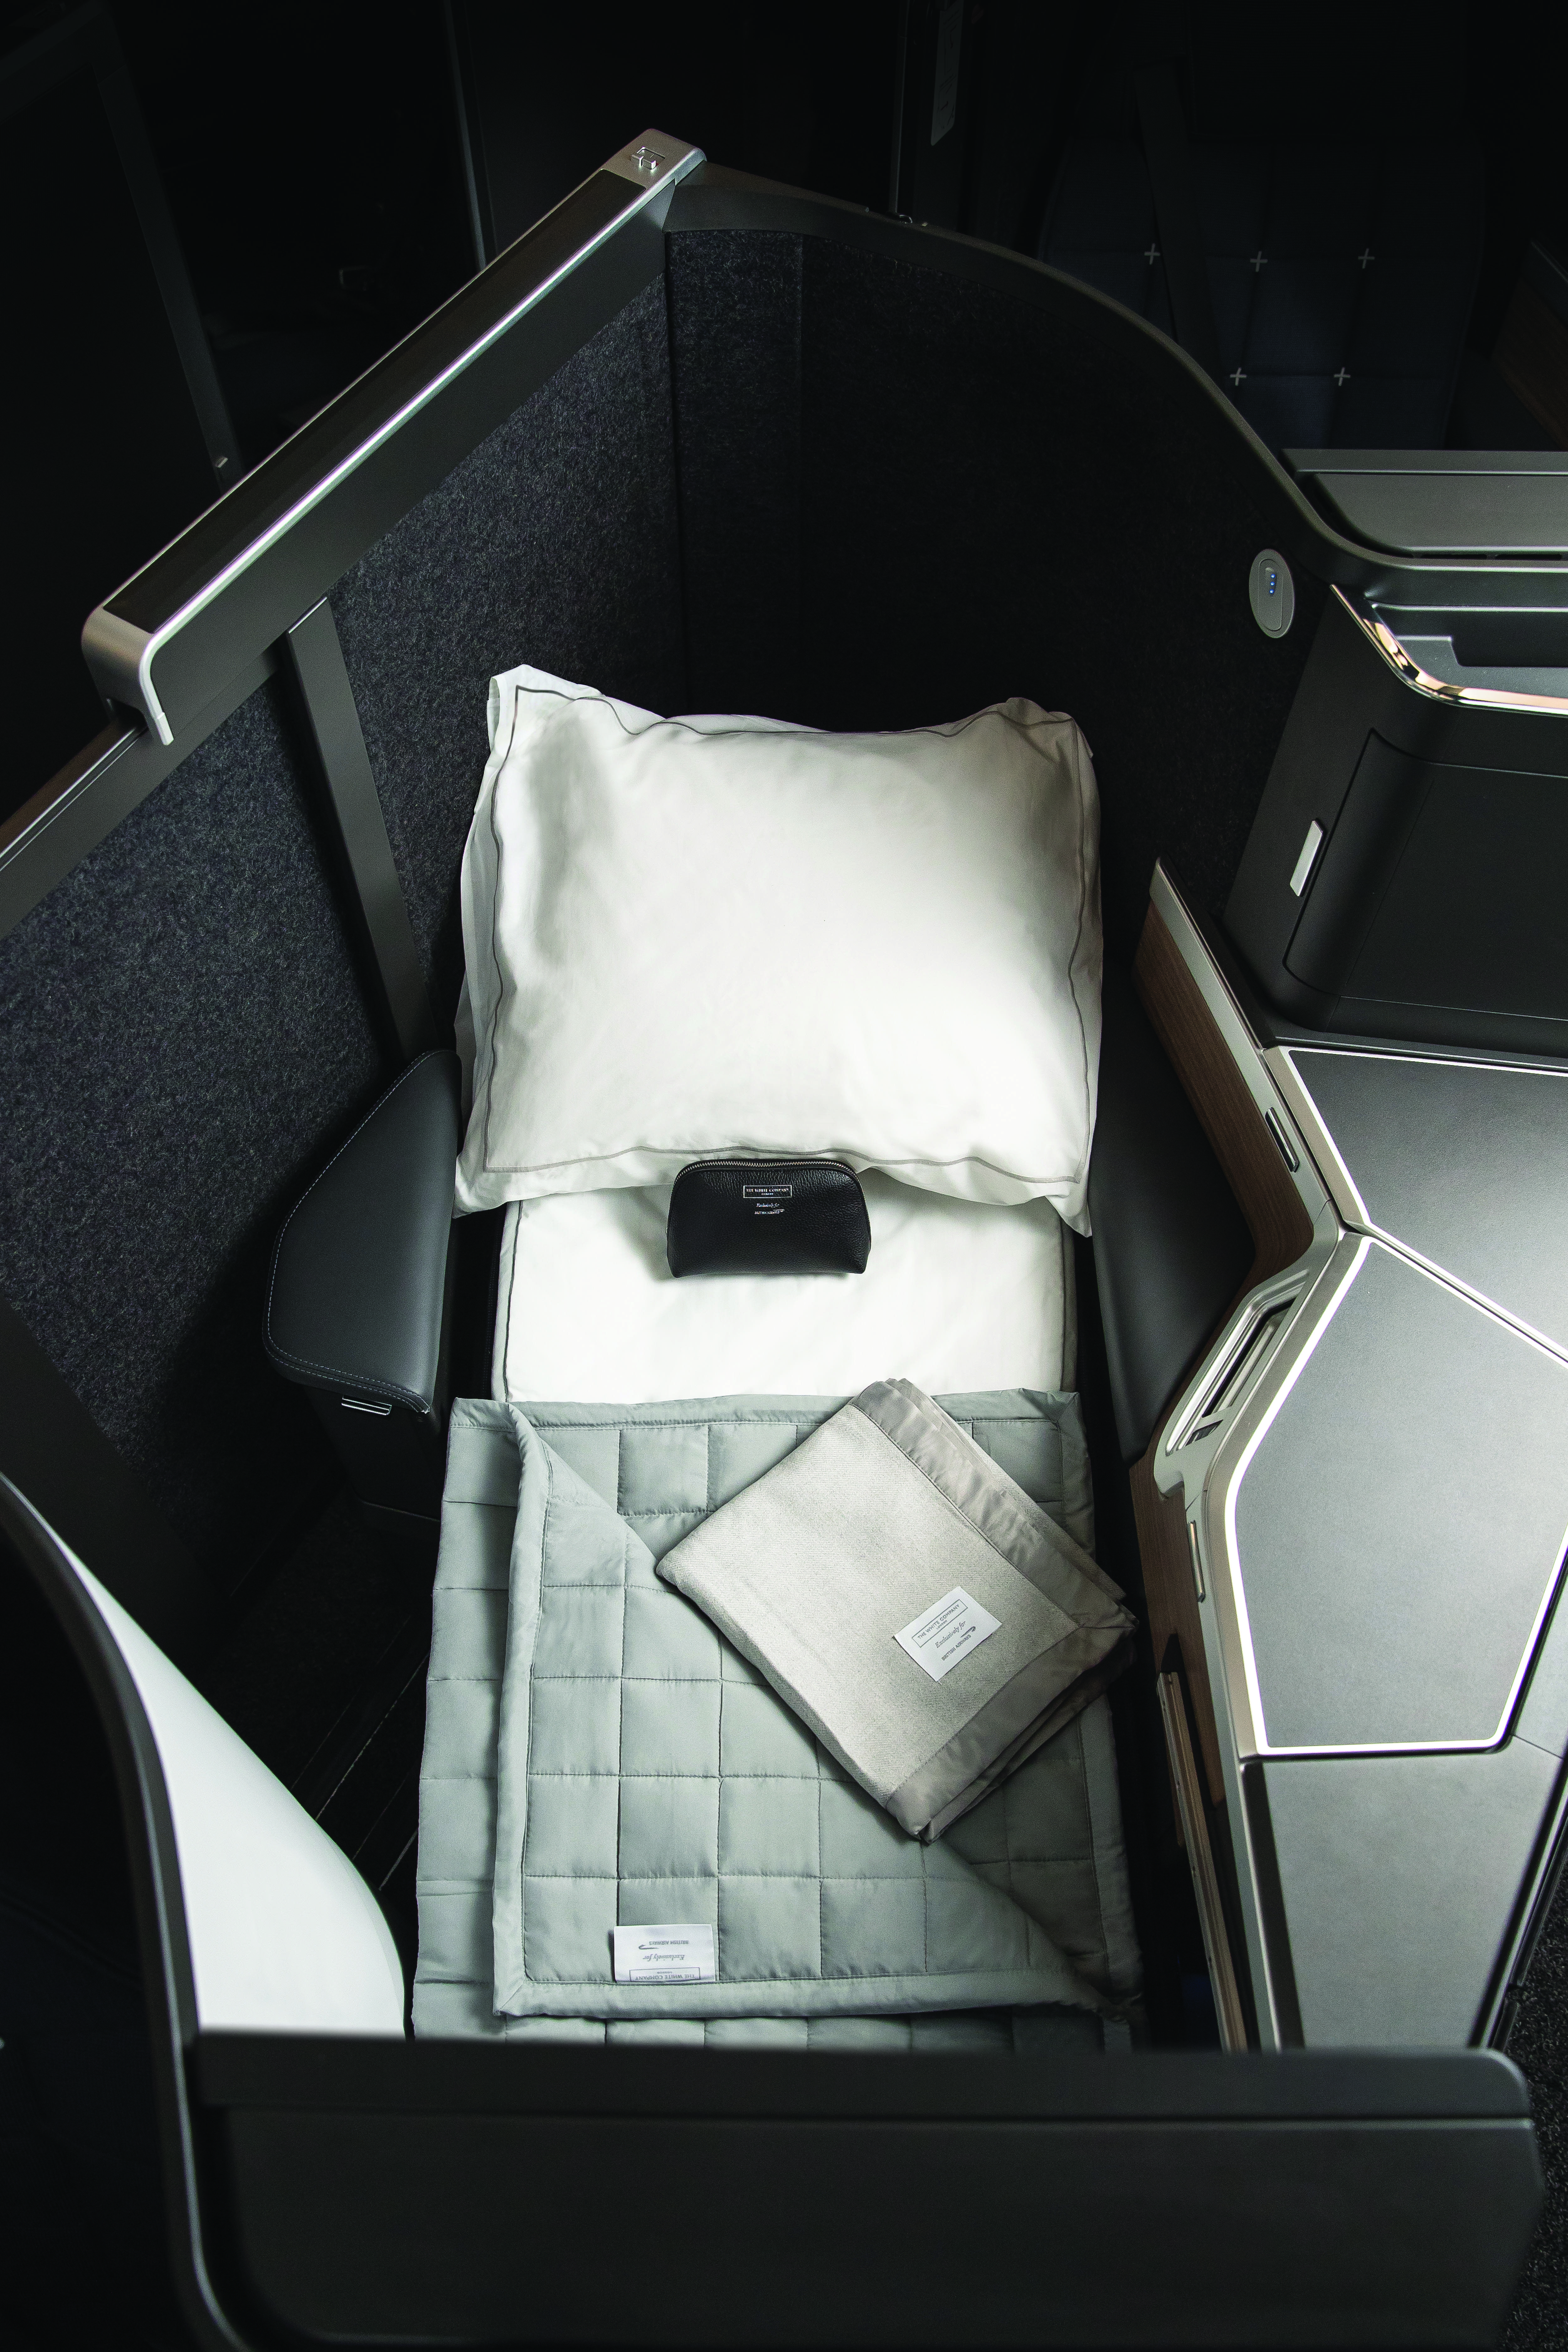 7e2cd2f78855 British Airways New Business Class Suite Product Leaves Us Feeling Mixed  Emotions - Unless you have been living under a rock today you will already  have ...